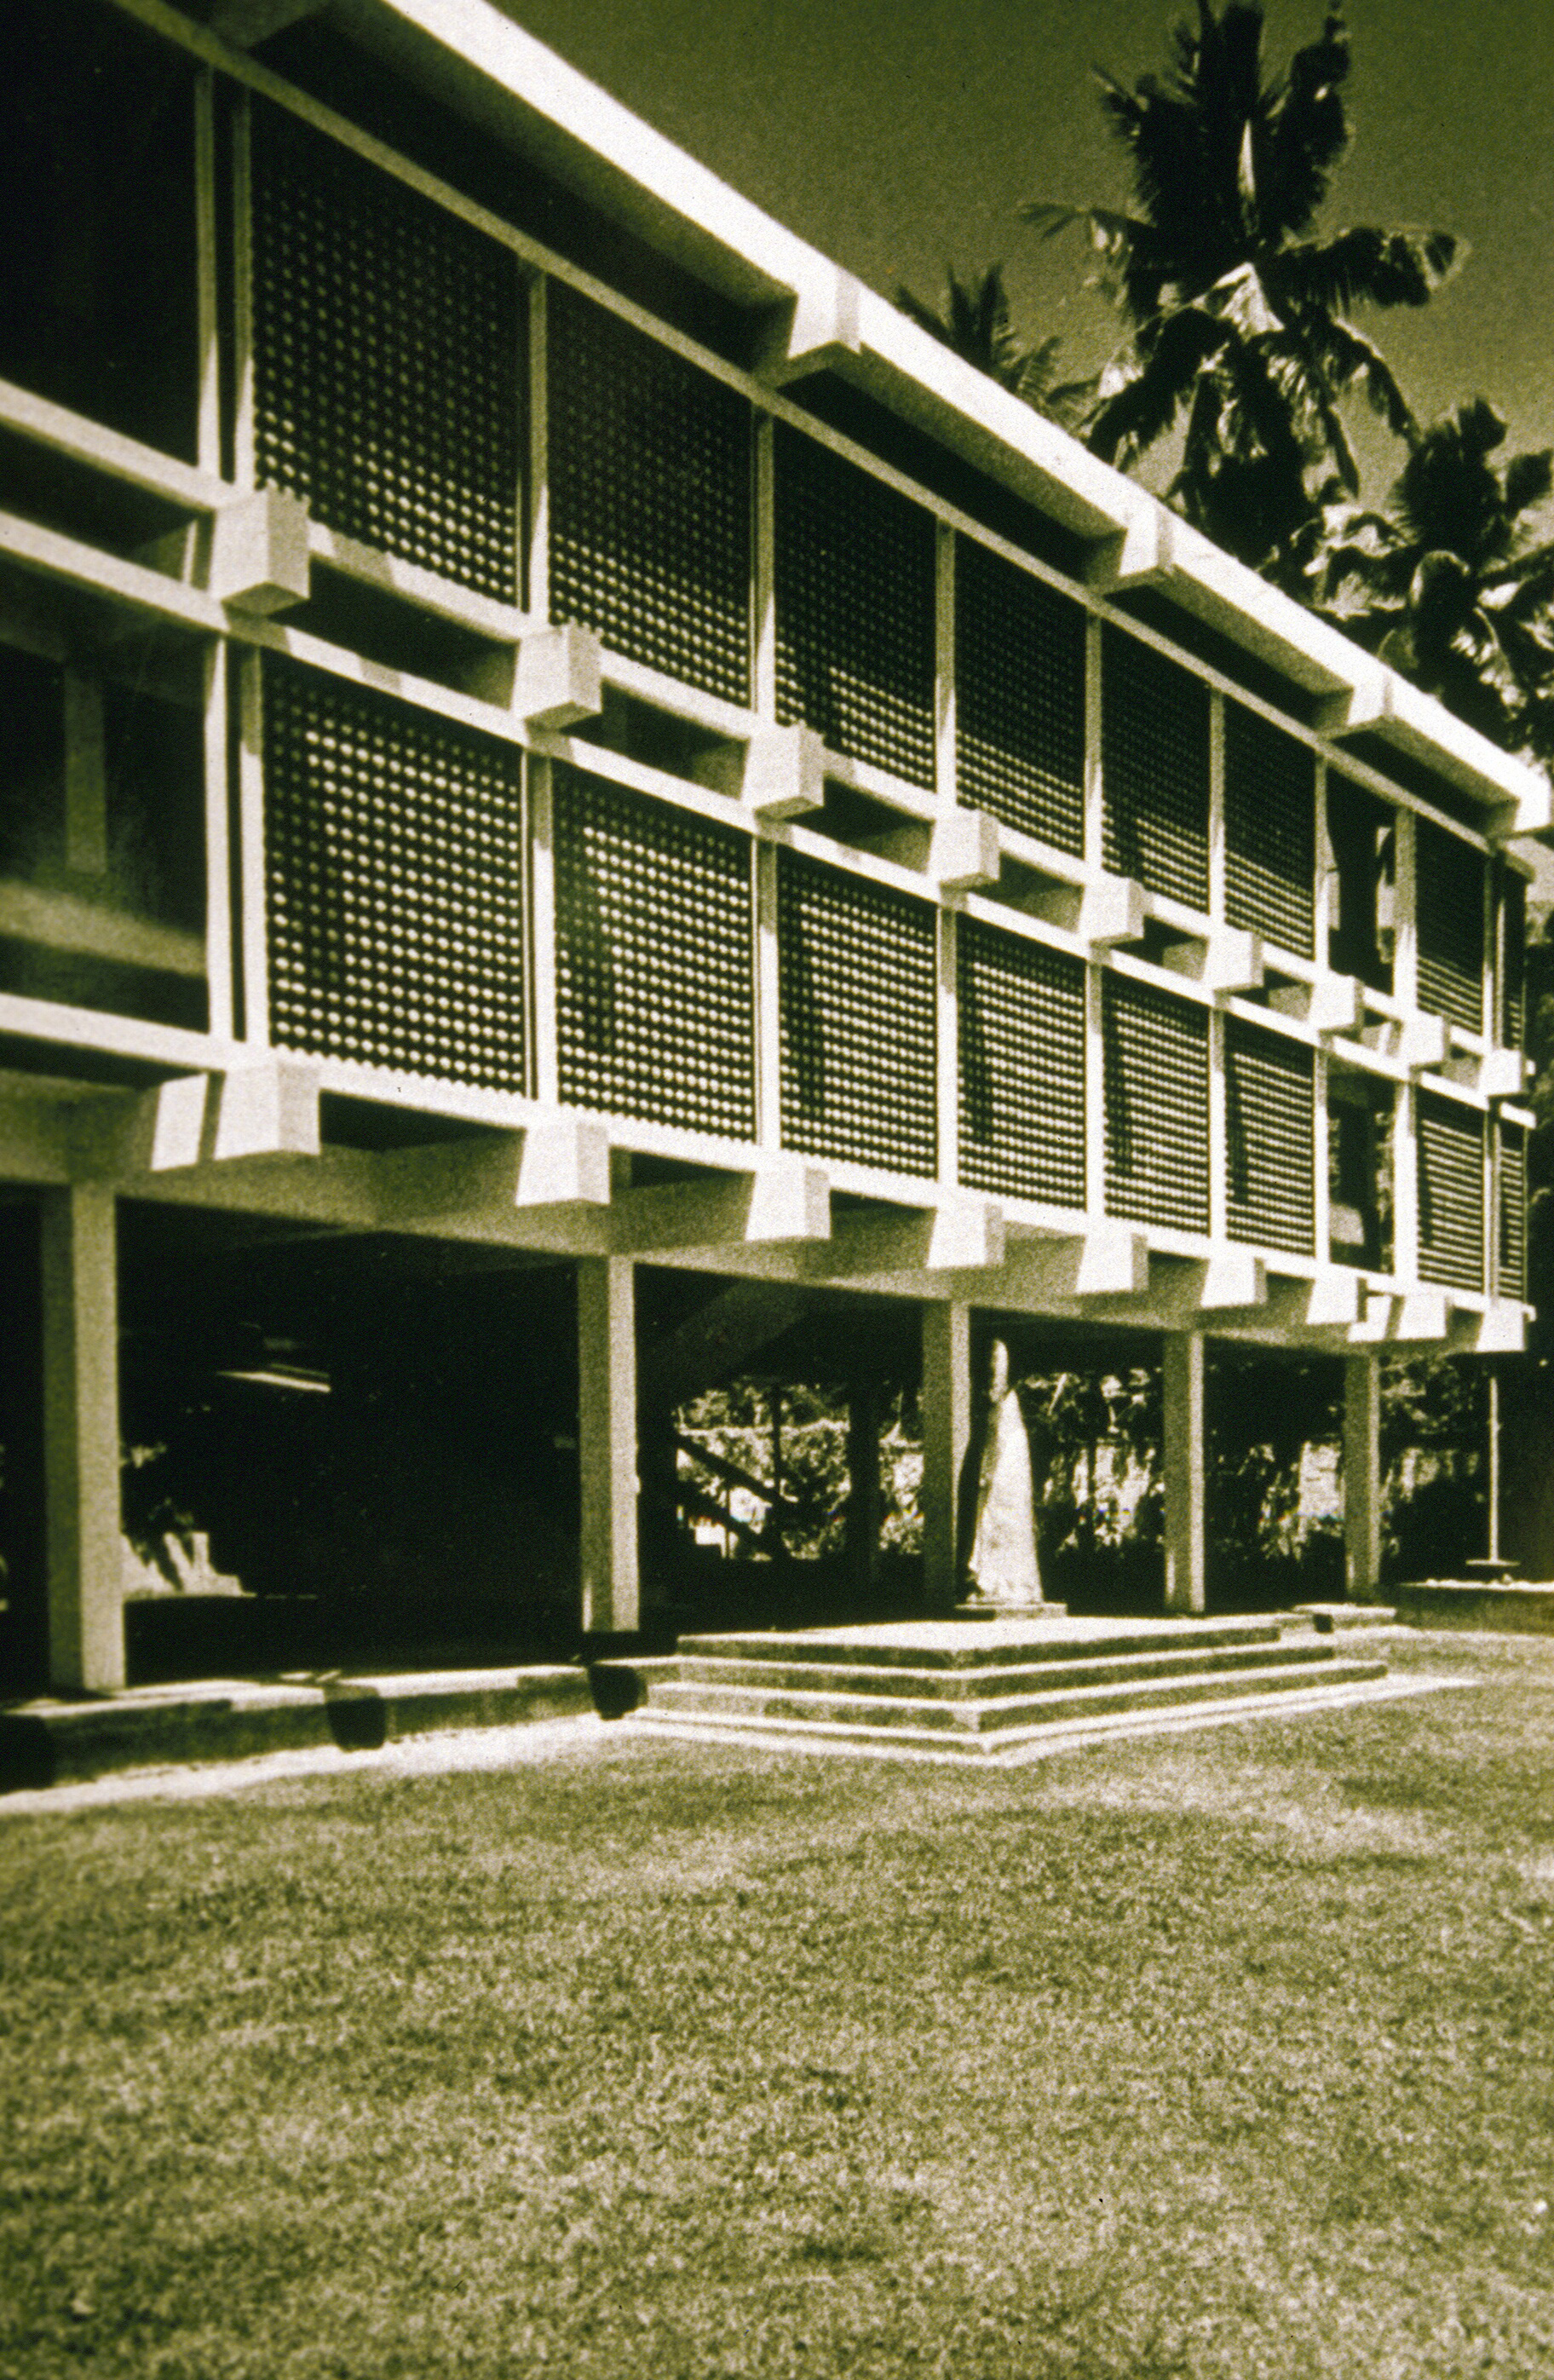 Classrooms at Bishop's College, 1959 | Geoffrey Bawa | David Robson | STIR